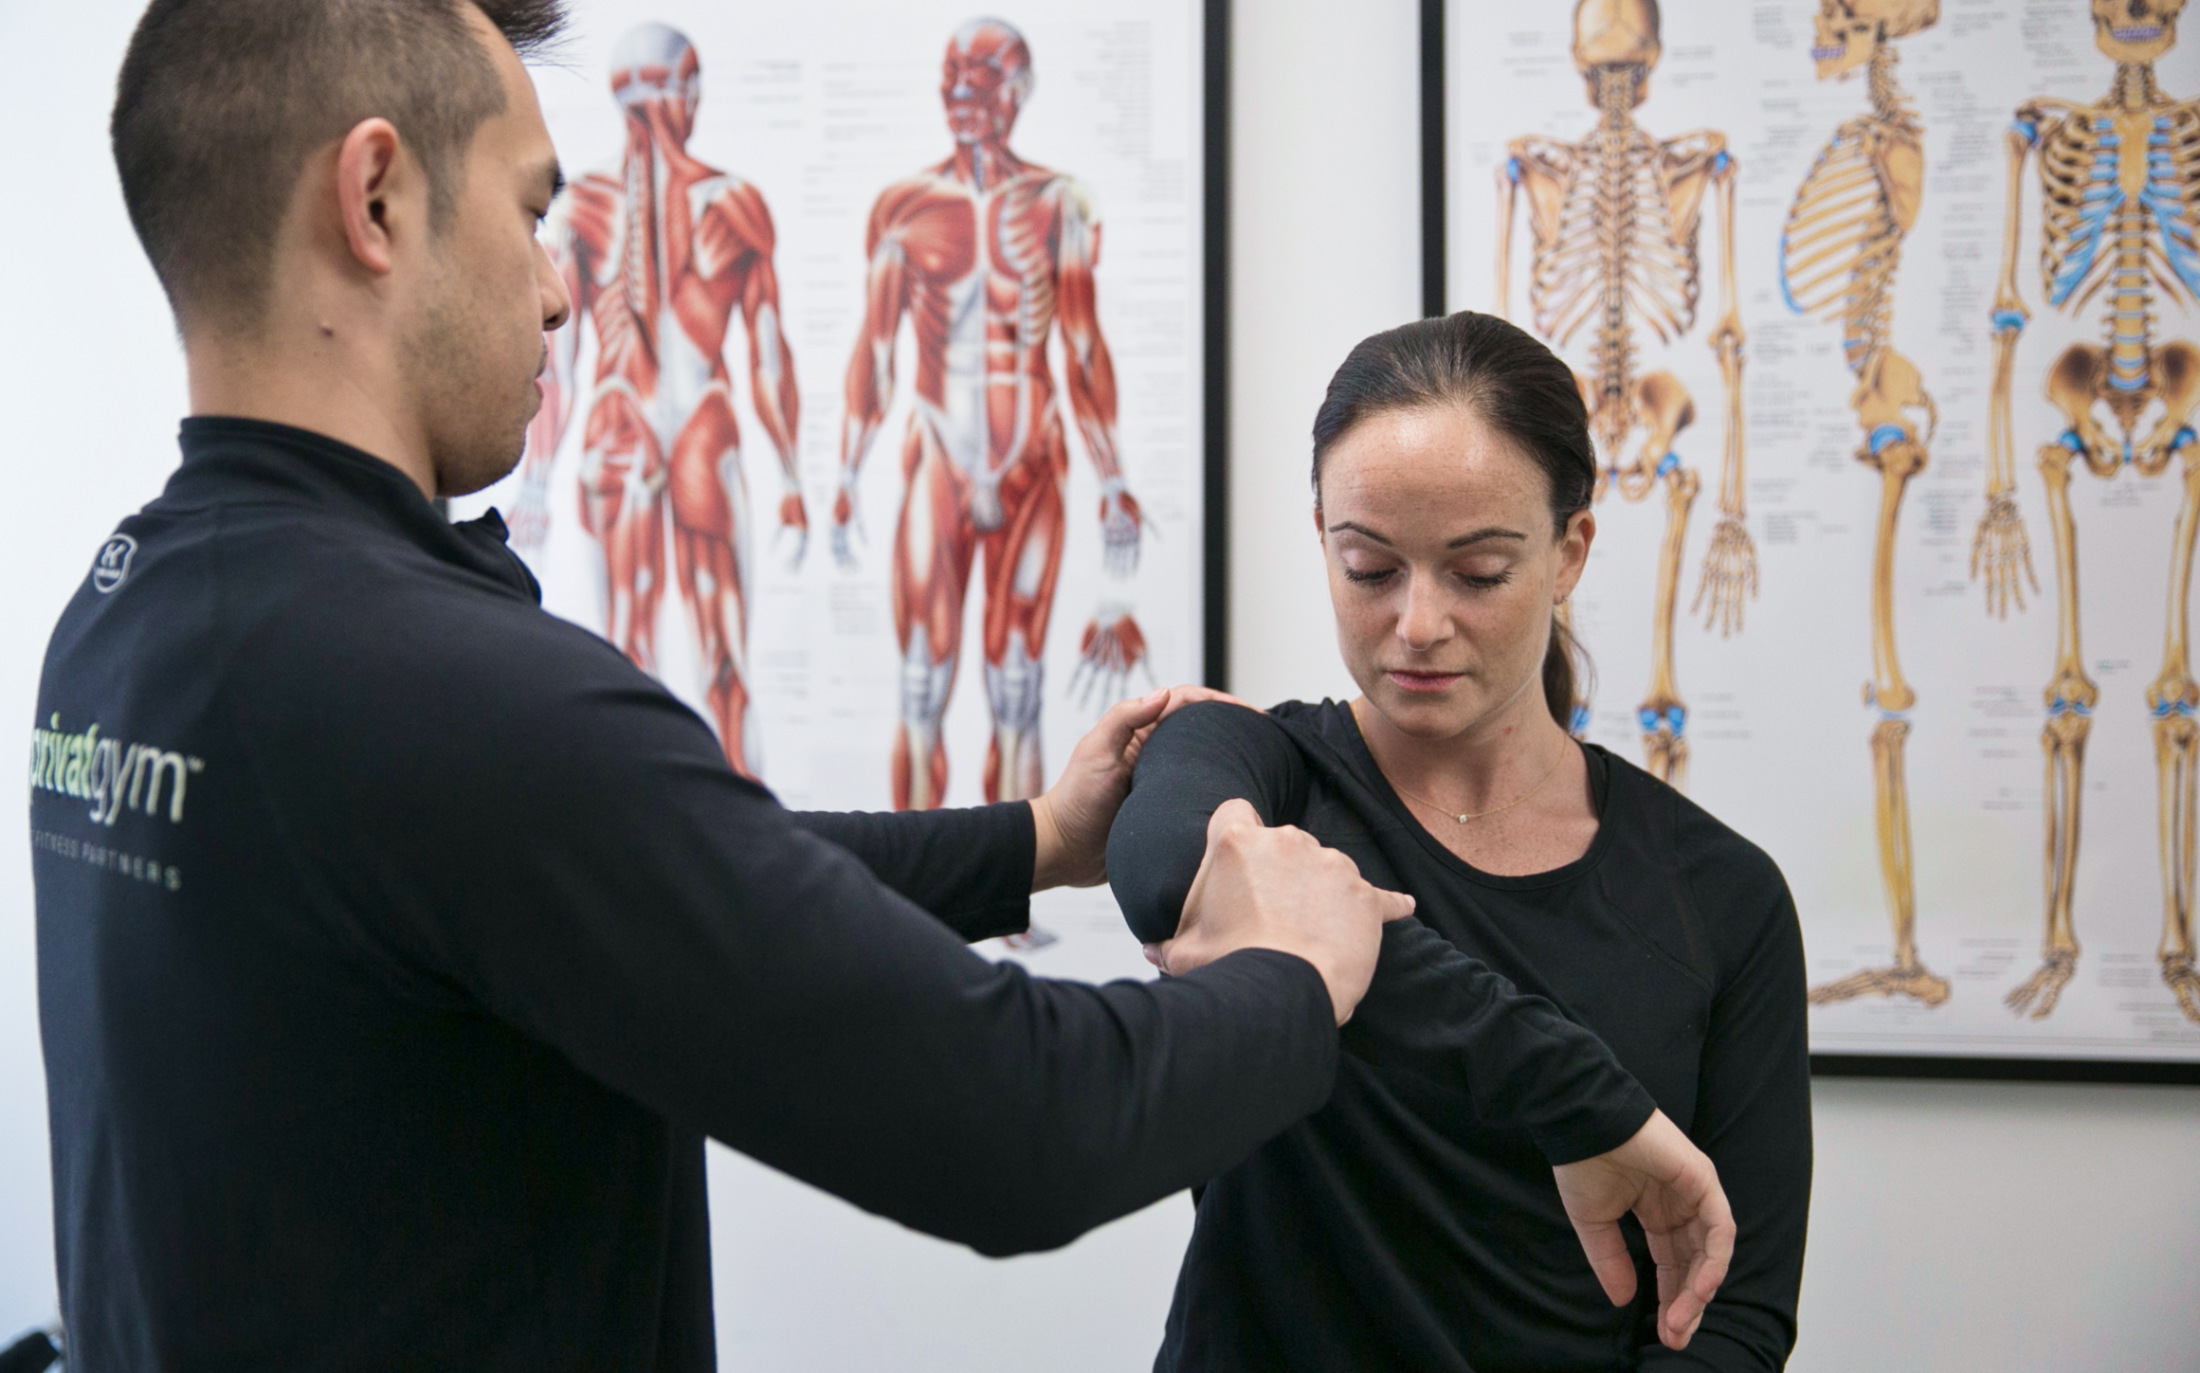 Rittenhouse Physical Therapy | One-on-one for your full session.